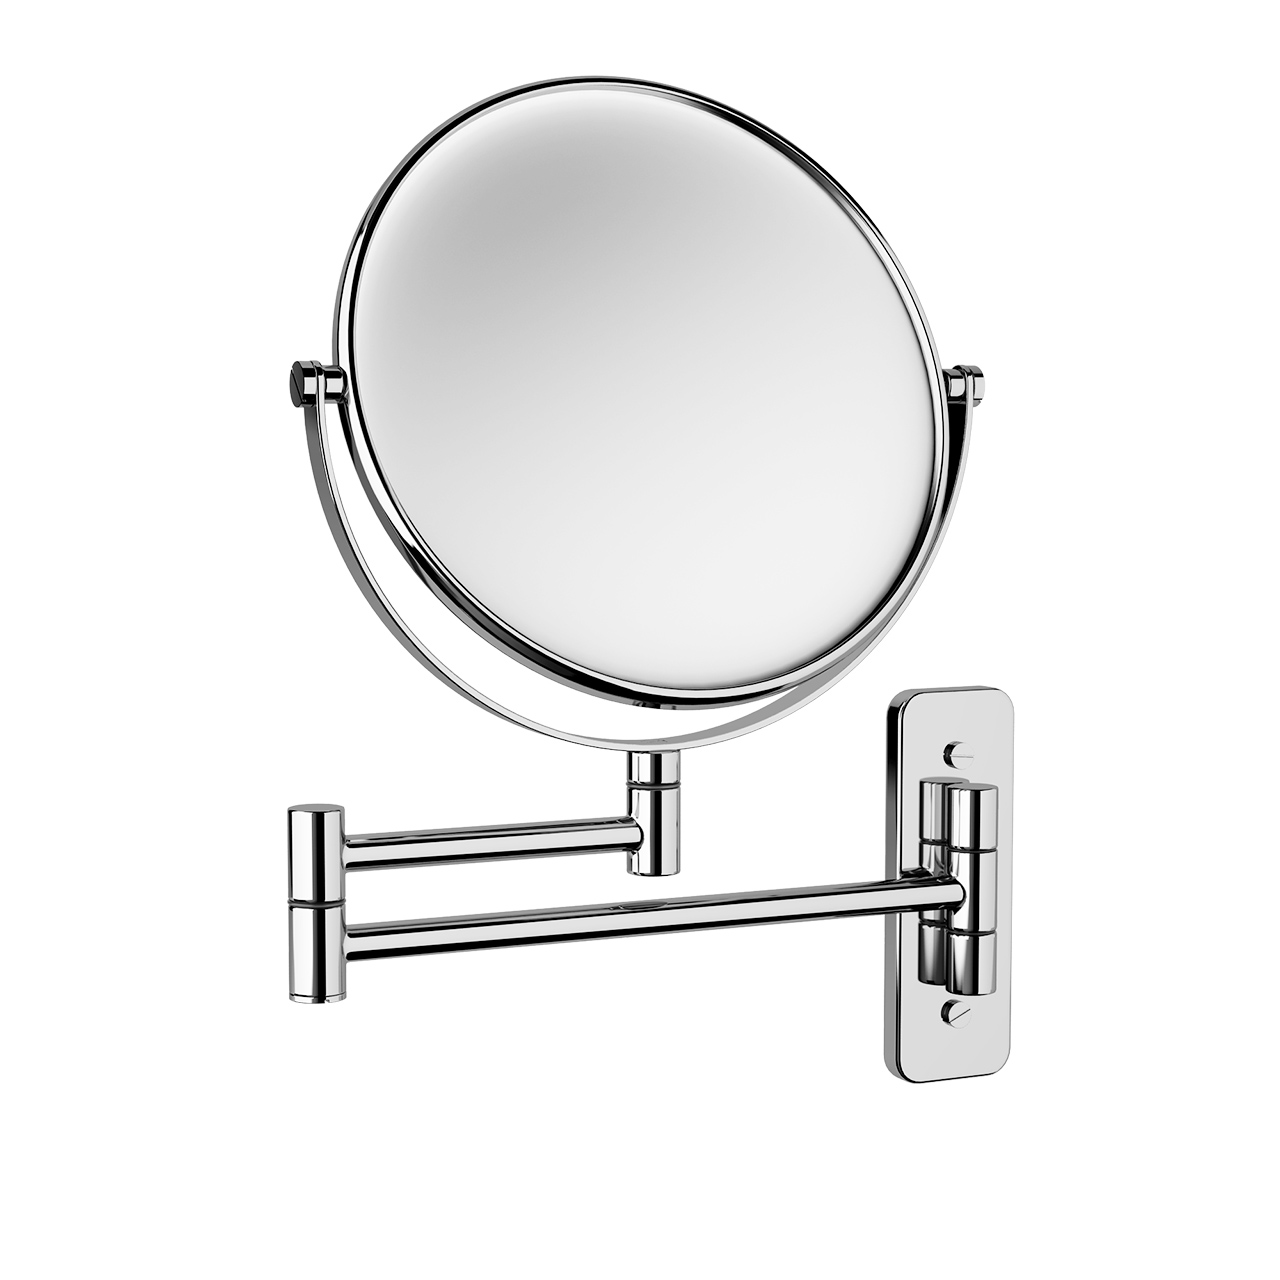 D-Code Cosmetic Mirror by Duravit